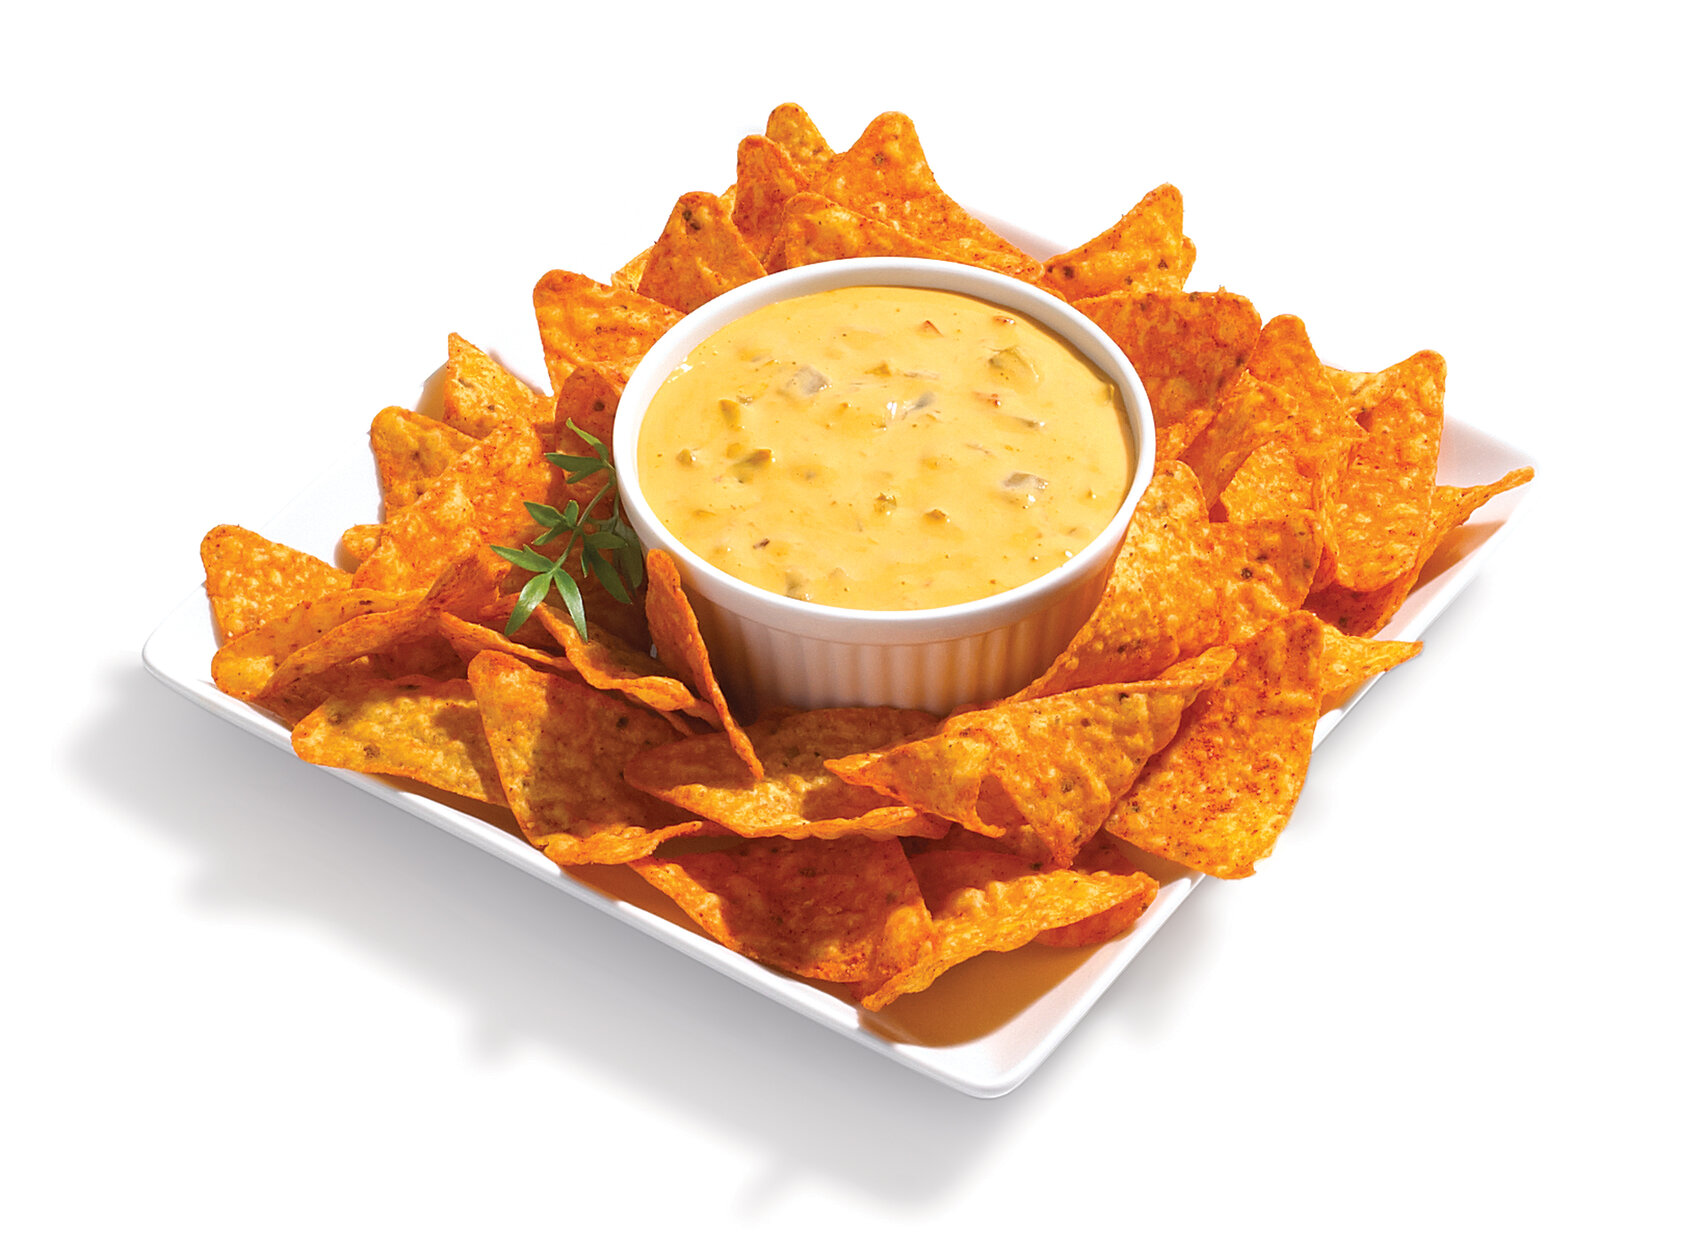 Cheese dip is one type of food that Kalsec's natural colors derived from carrots might go into. (Courtesy of Kalsec)